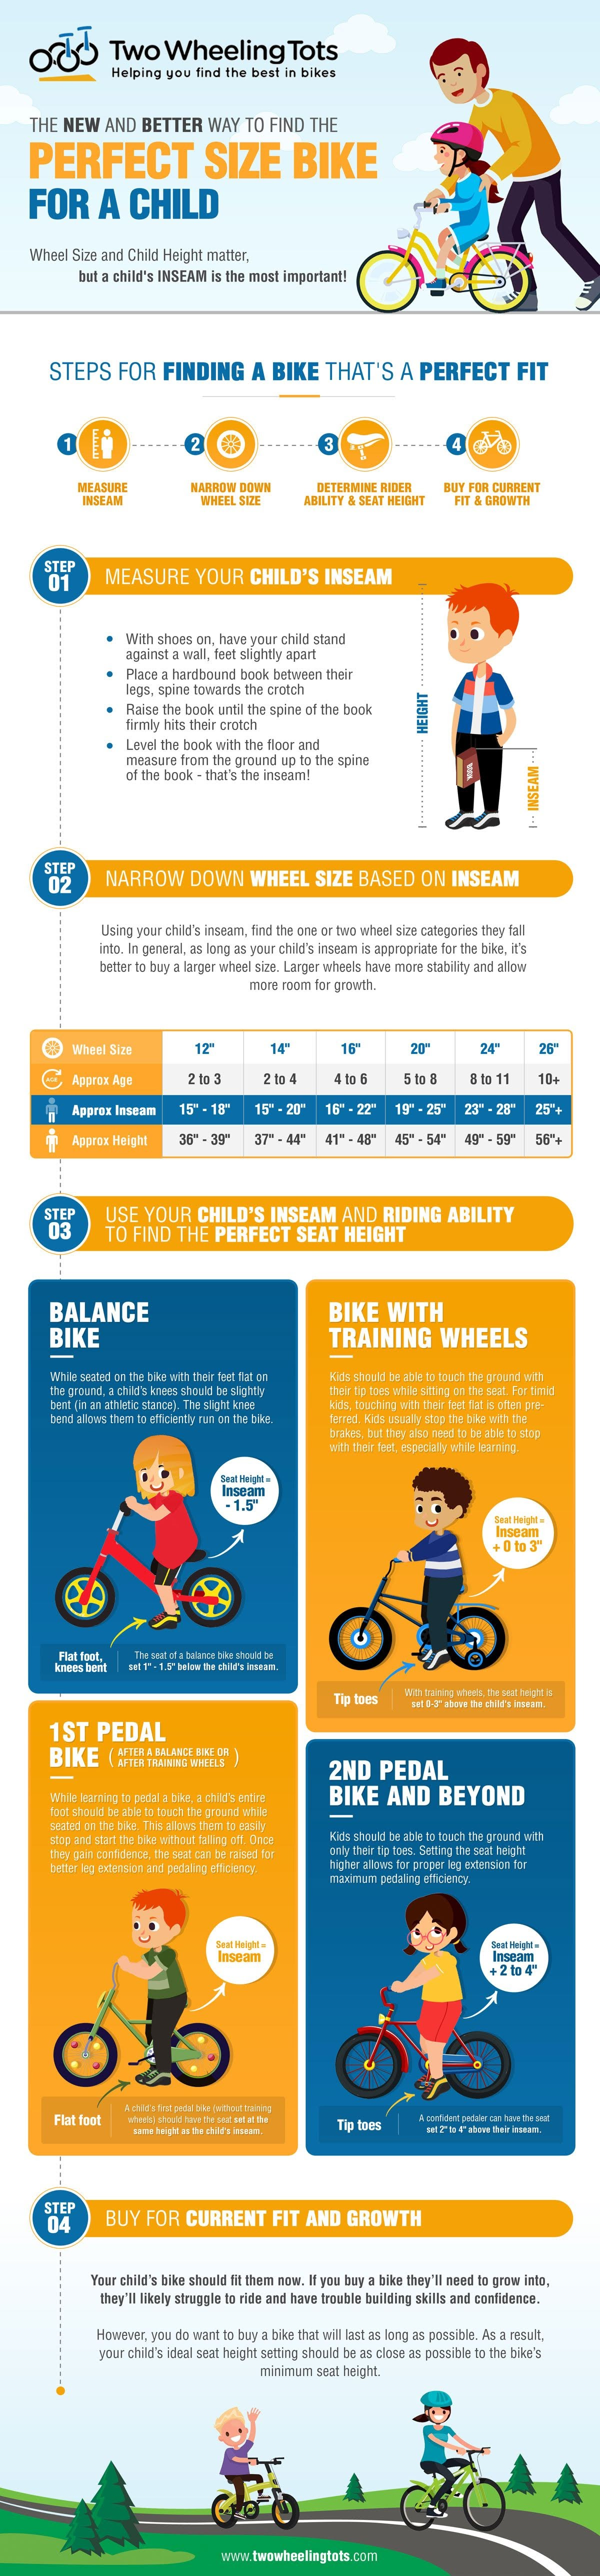 The New and Better Way to Find the Perfect Size Bike for a Child #infographic